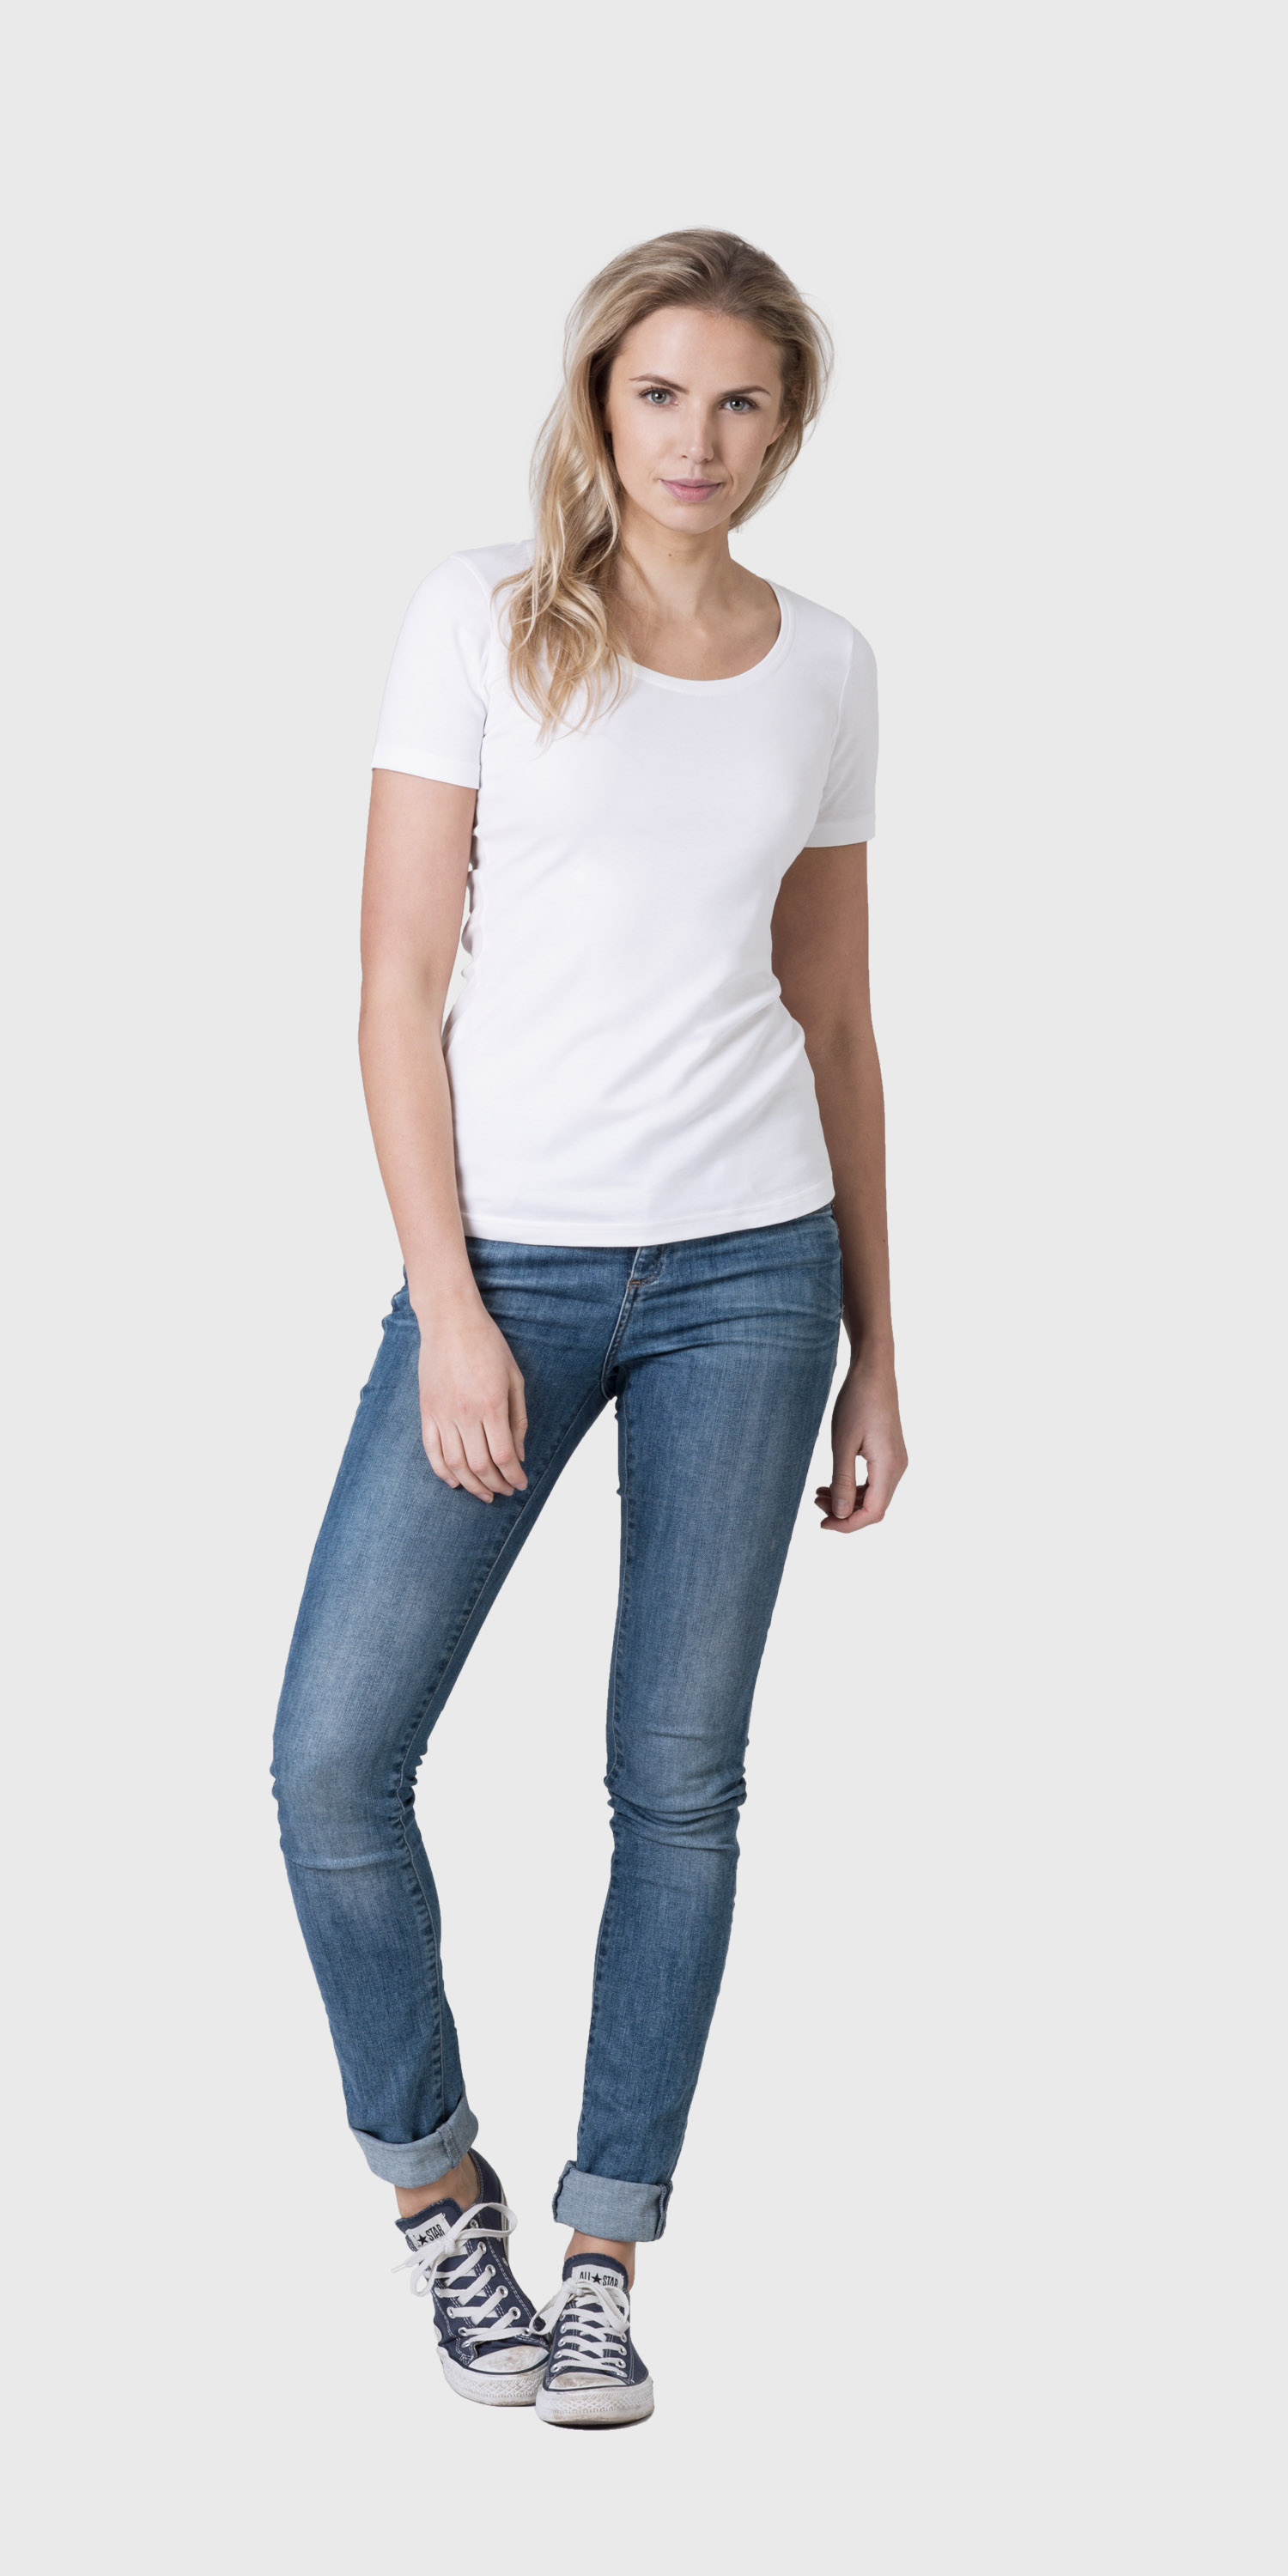 White t shirt for womens - Organic Cotton White Scoop Neck T Shirt